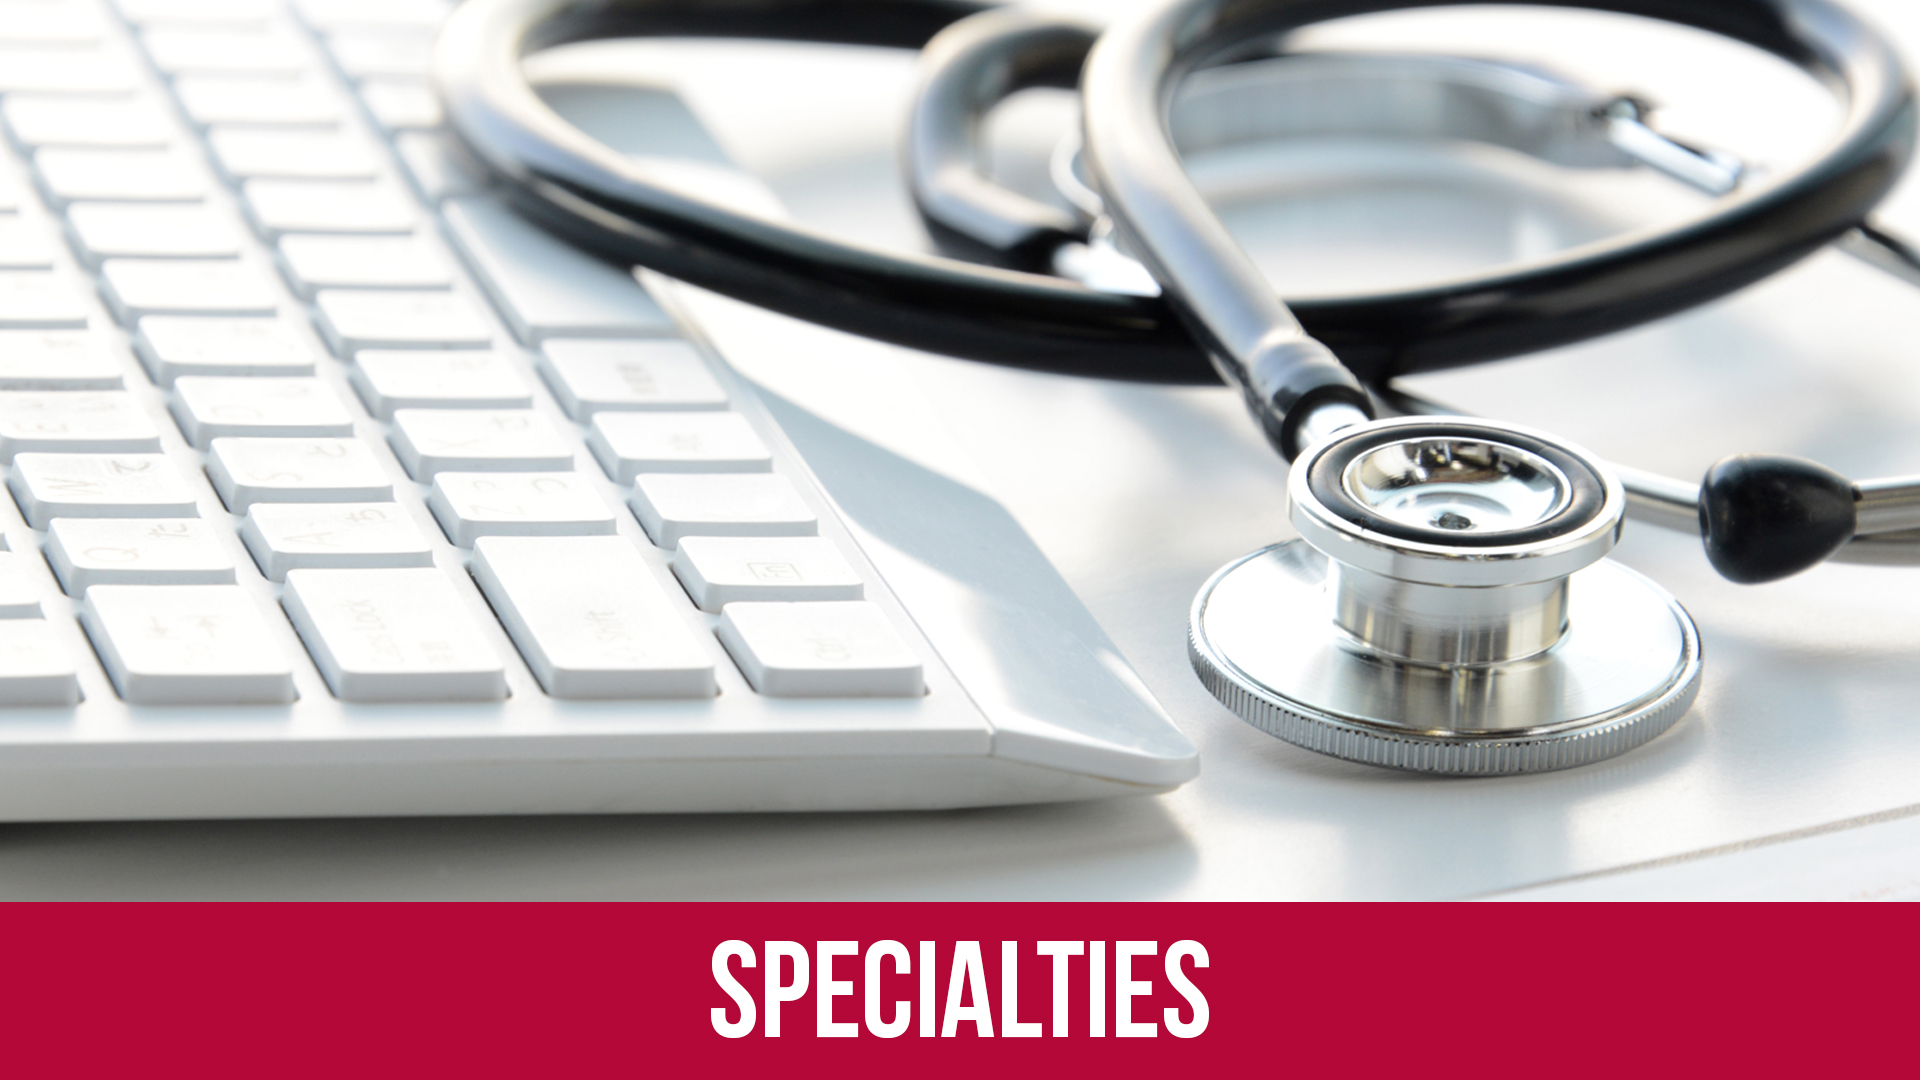 Box Academic Advising Specialties